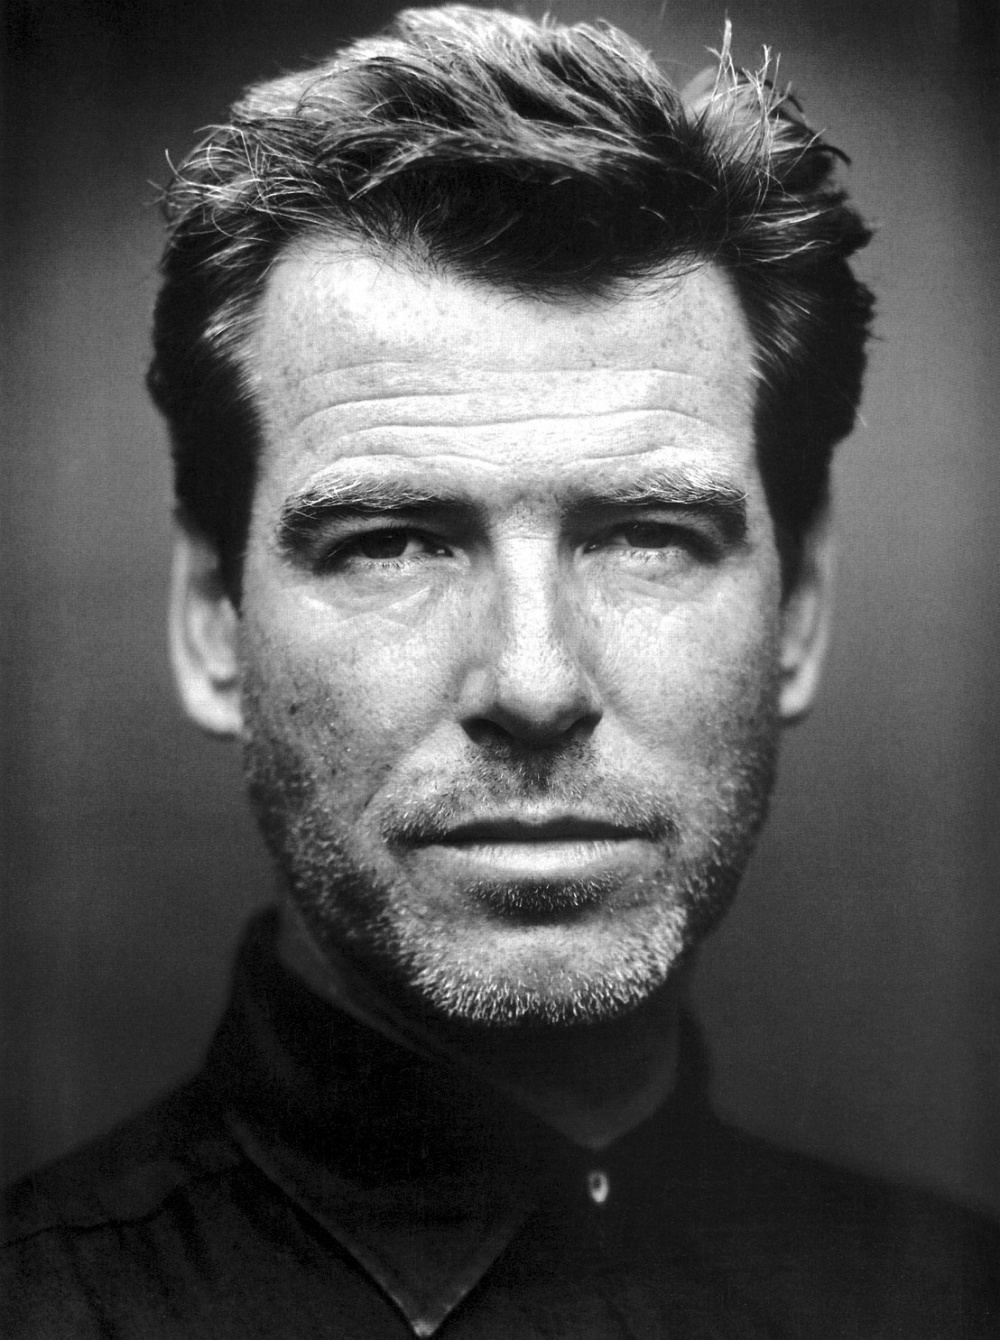 [Image: Pierce-Brosnan-pierce-brosnan-9651369-1000-1340.jpg]